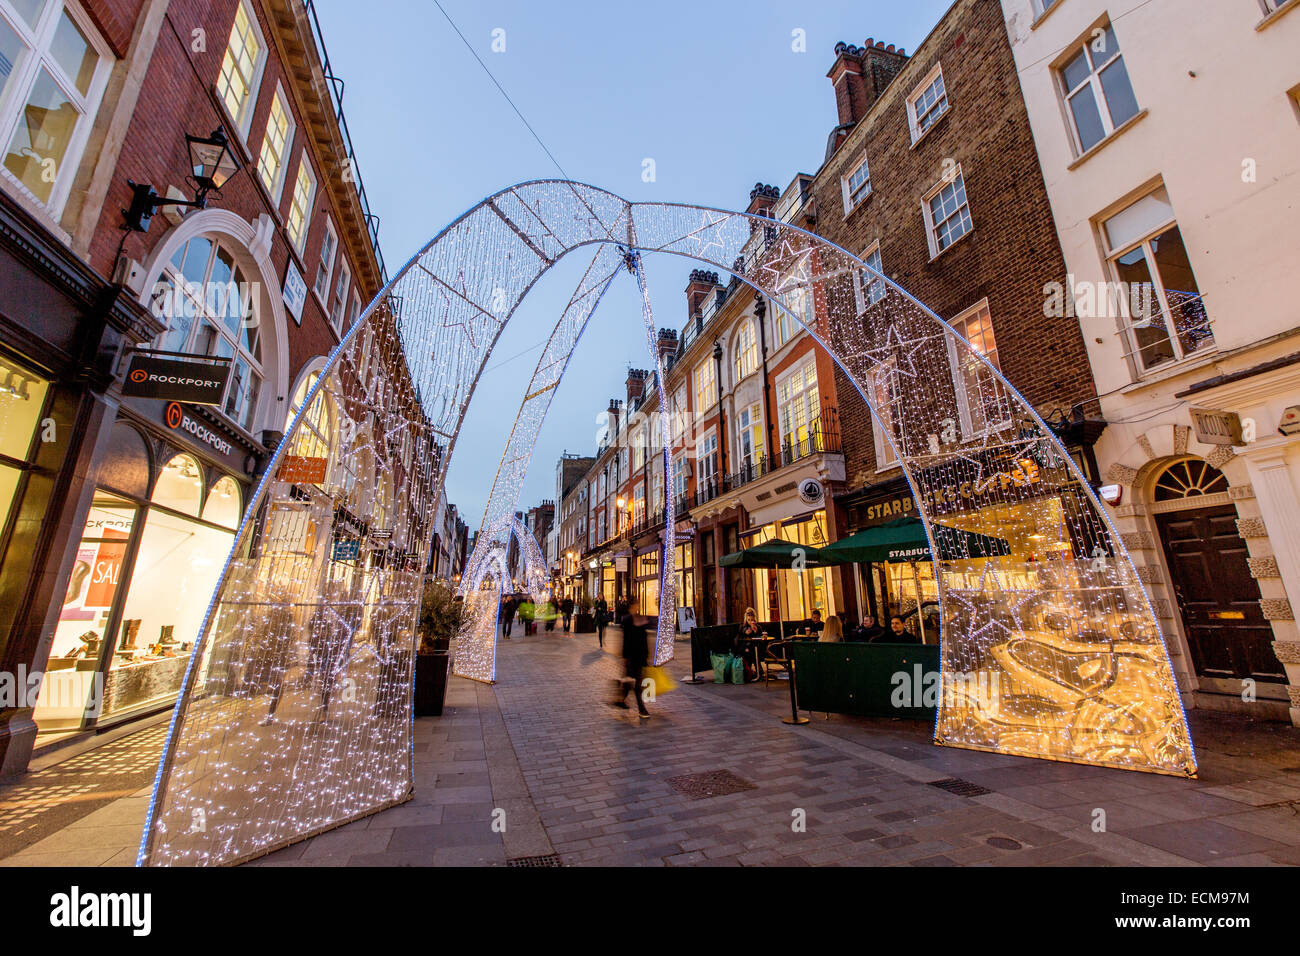 Christmas Decorations South Molton Street London UK - Stock Image